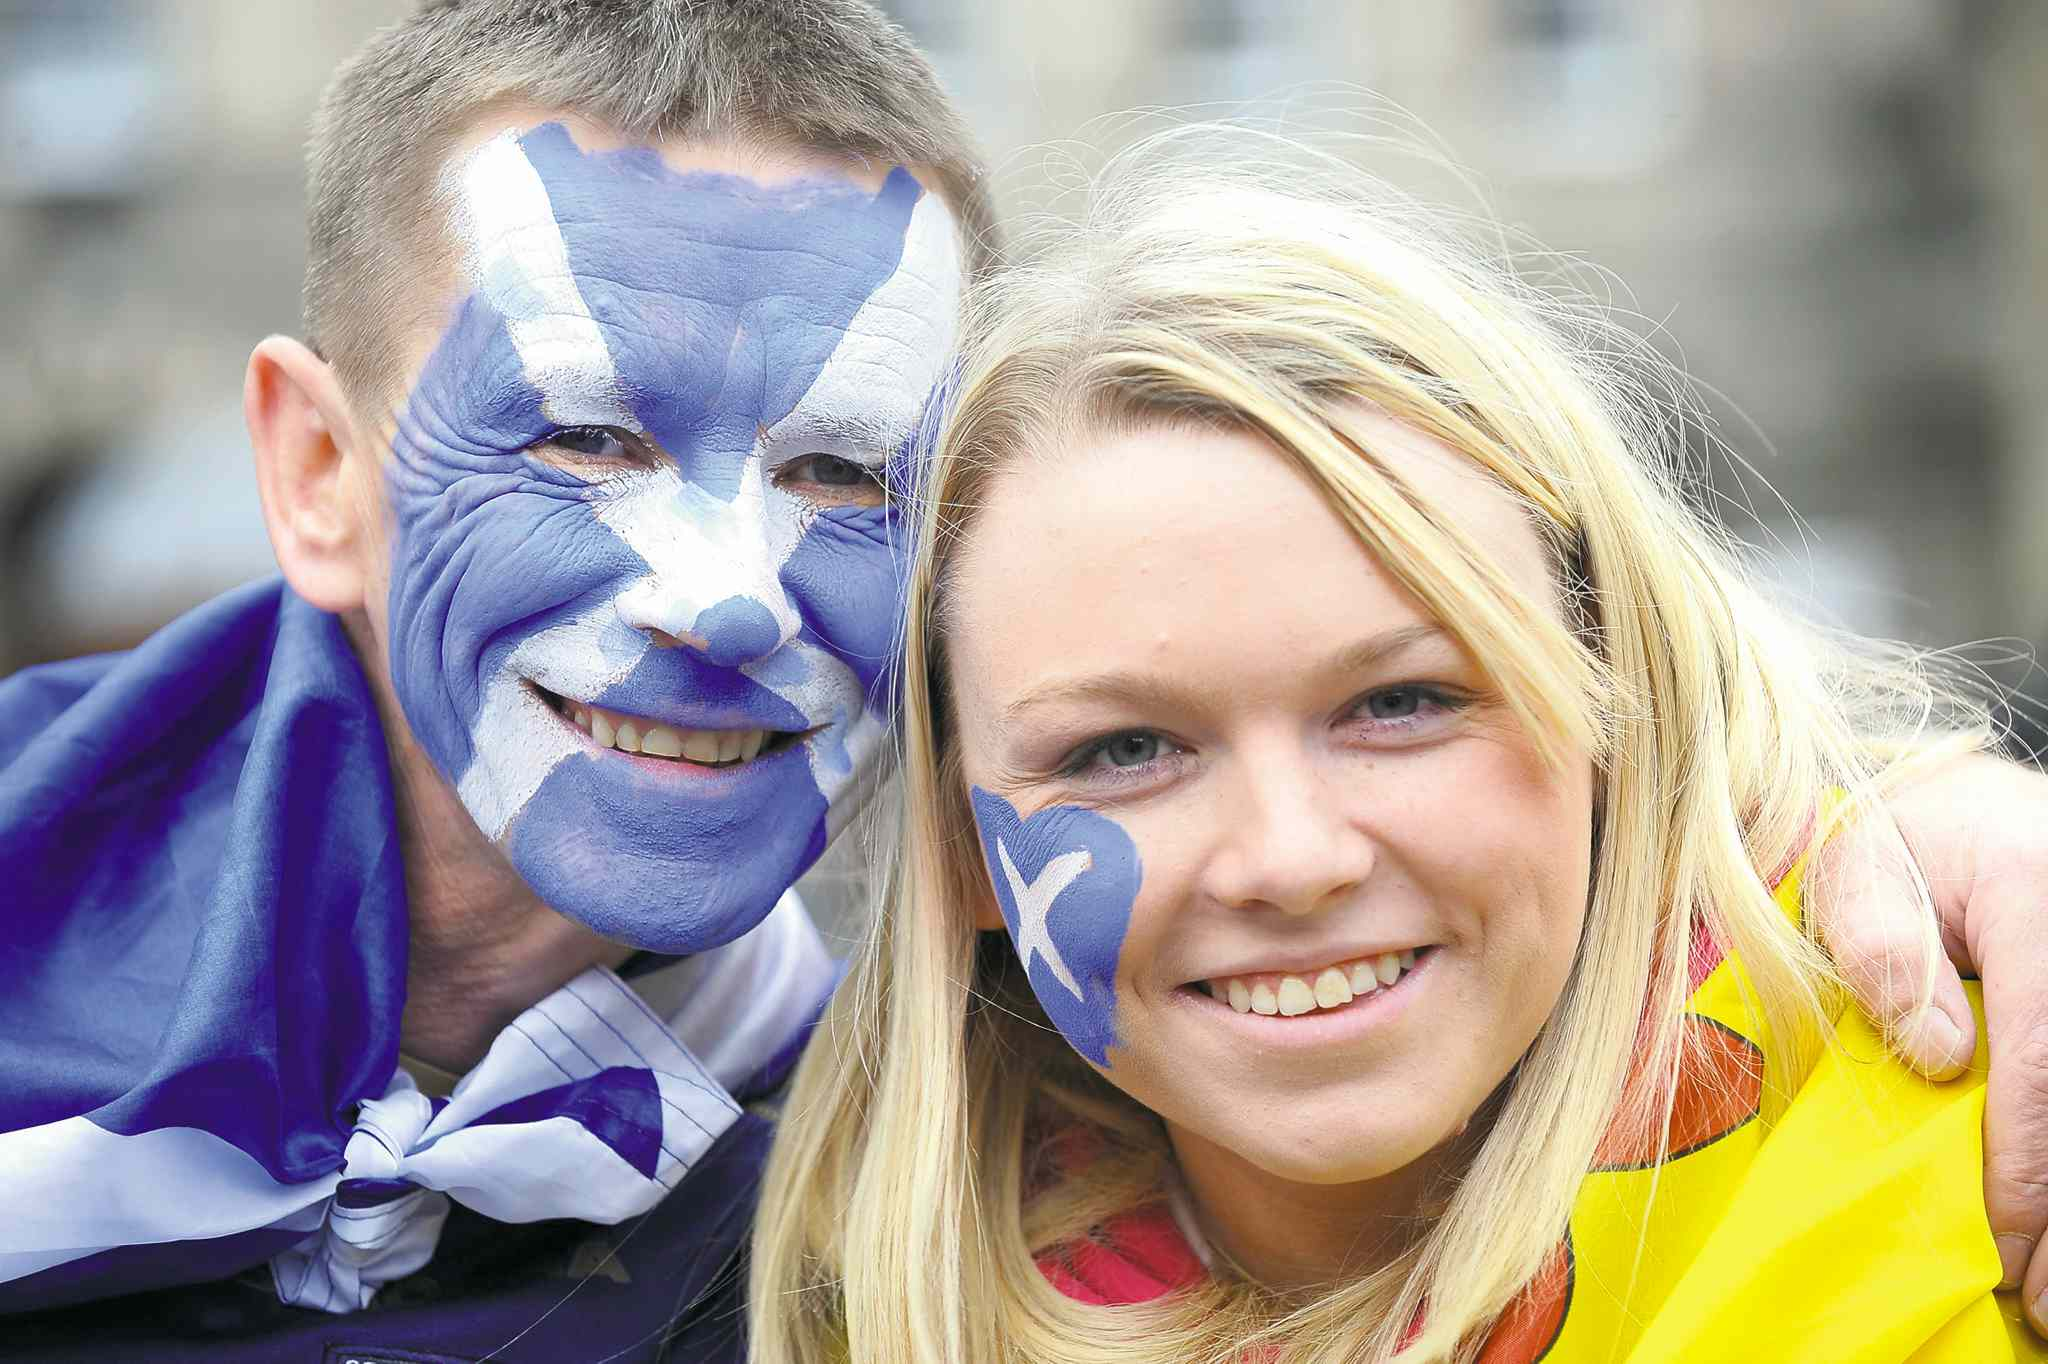 Young Scots have been active in the upcoming referendum on independence. People aged 16 and 17 can cast a ballot in September, and surveys show young people may be following the debate more than adults.